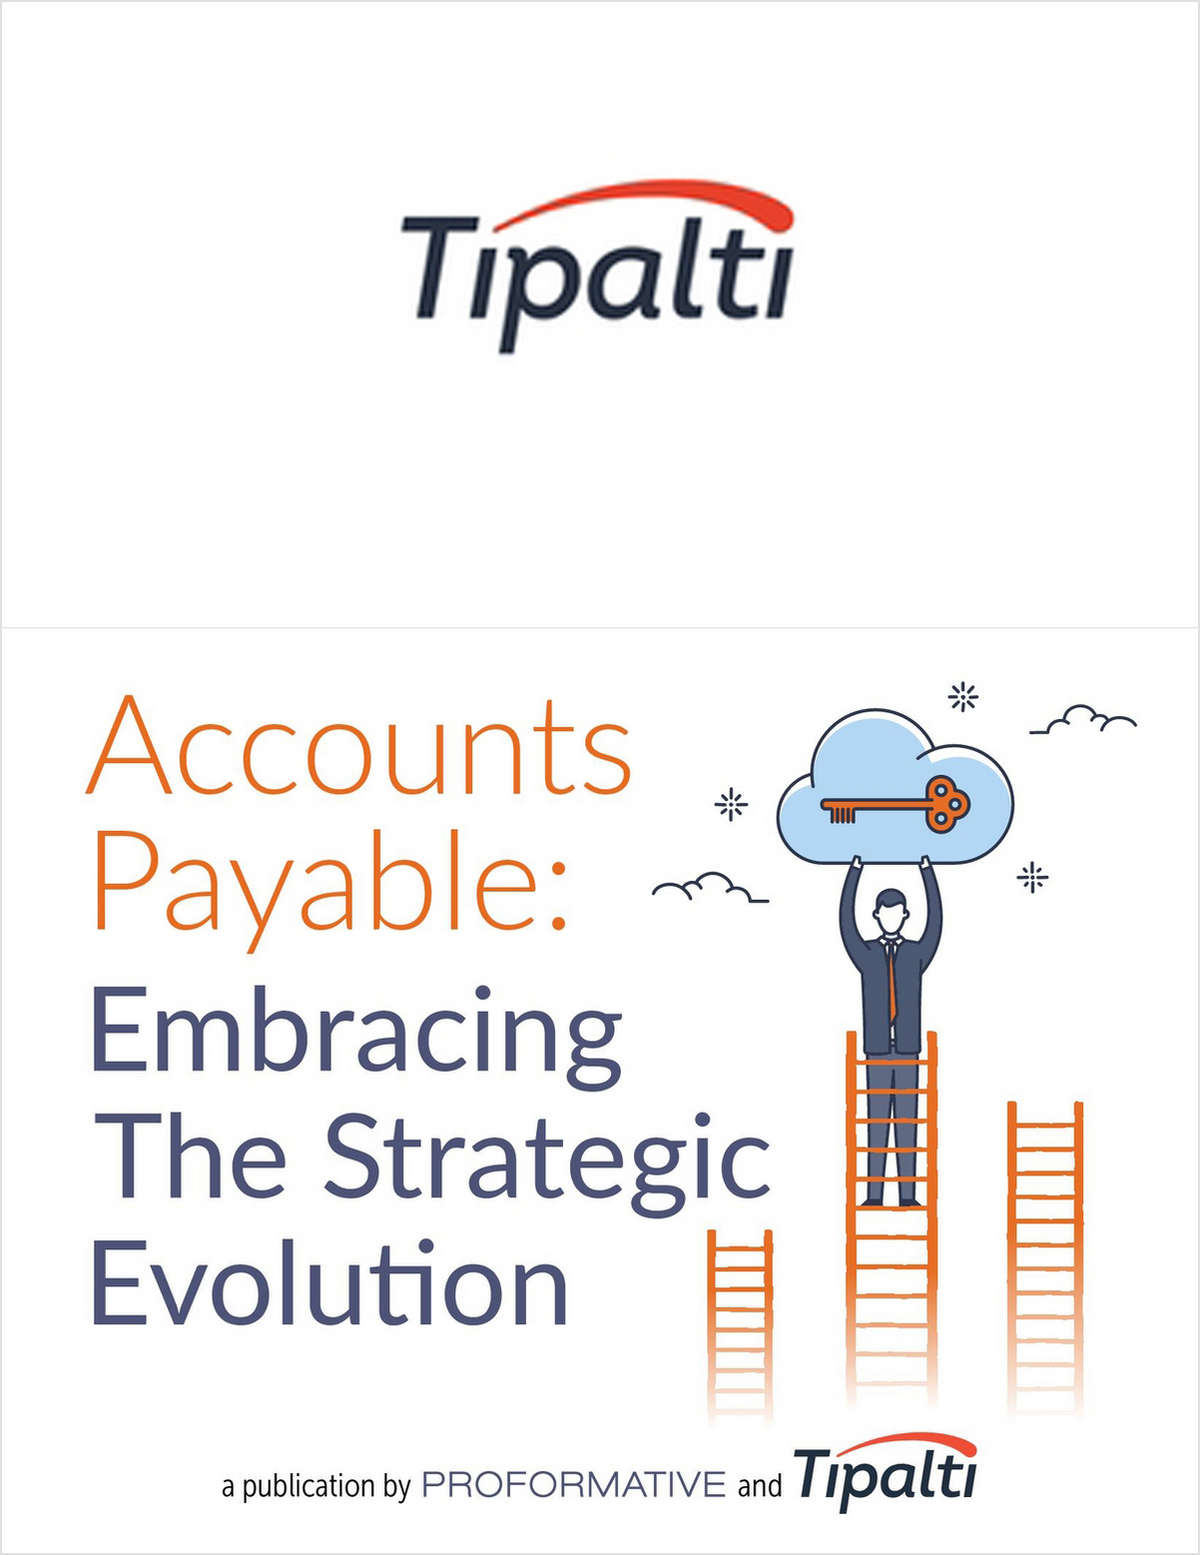 Accounts Payable: Embracing The Strategic Evolution